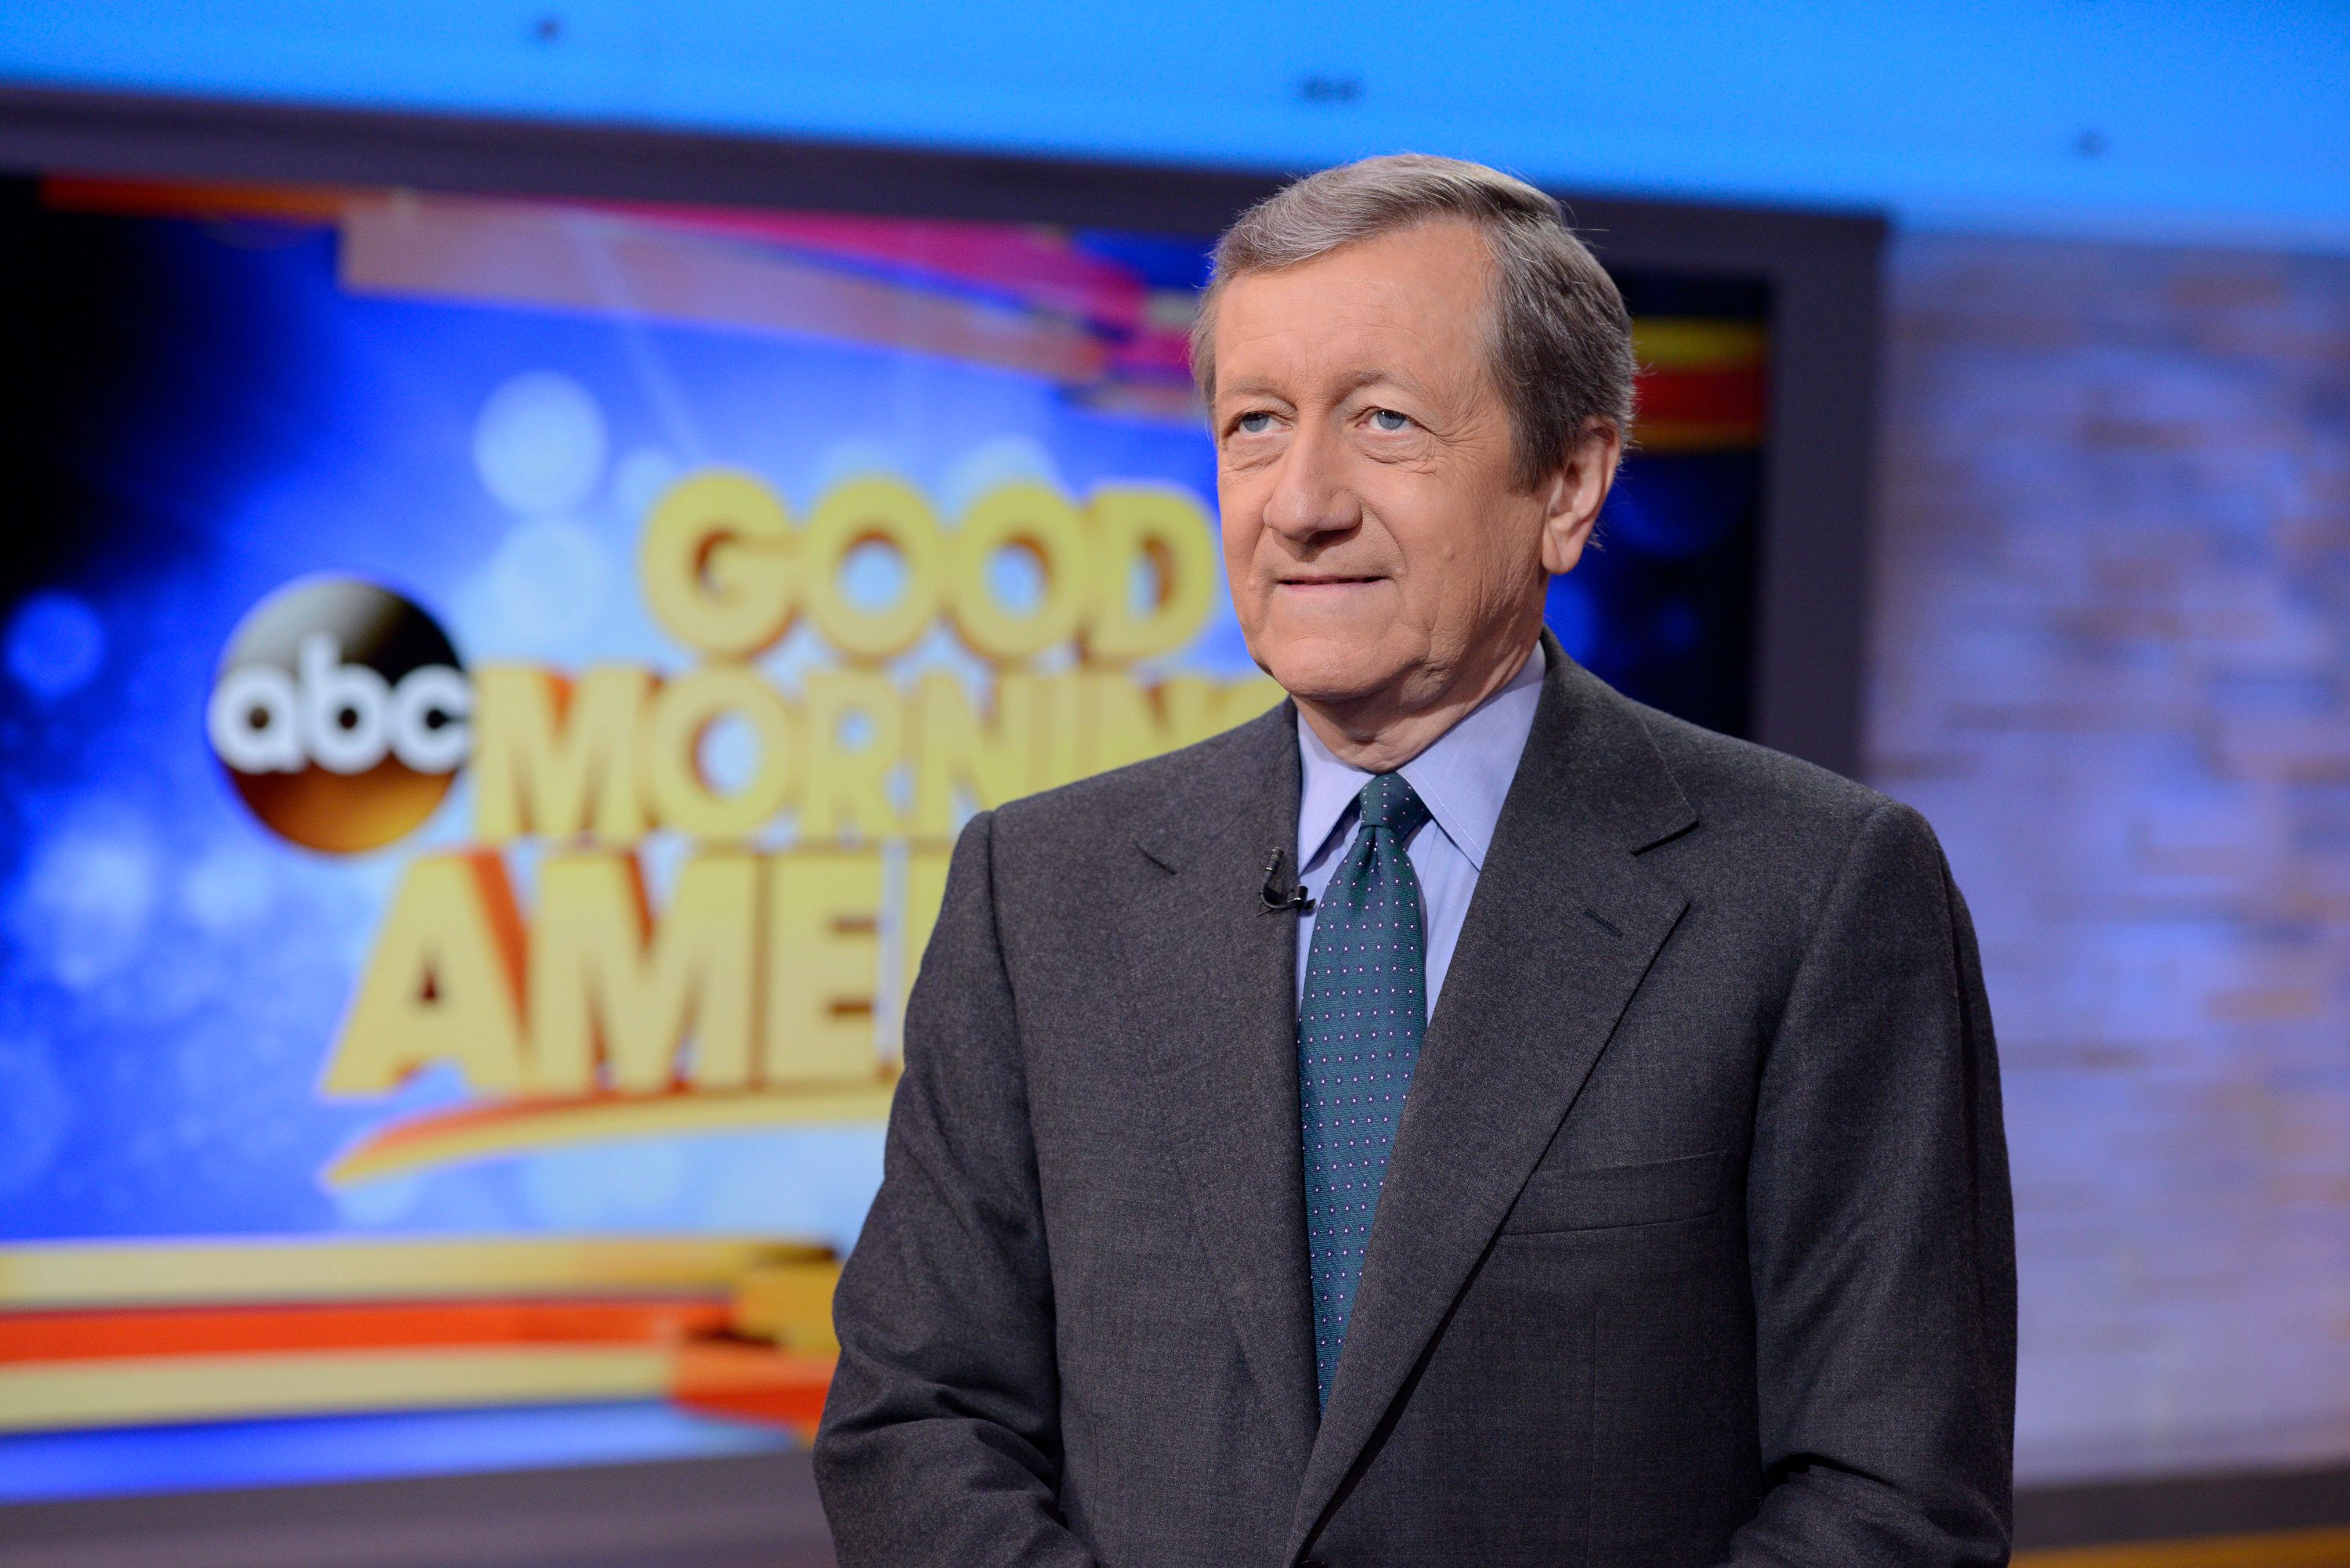 GOOD MORNING AMERICA - Brian Ross on 'Good Morning America,' 1/12/15, airing on the ABC Television Network. (Photo by Lorenzo Bevilaqua/ABC via Getty Images)